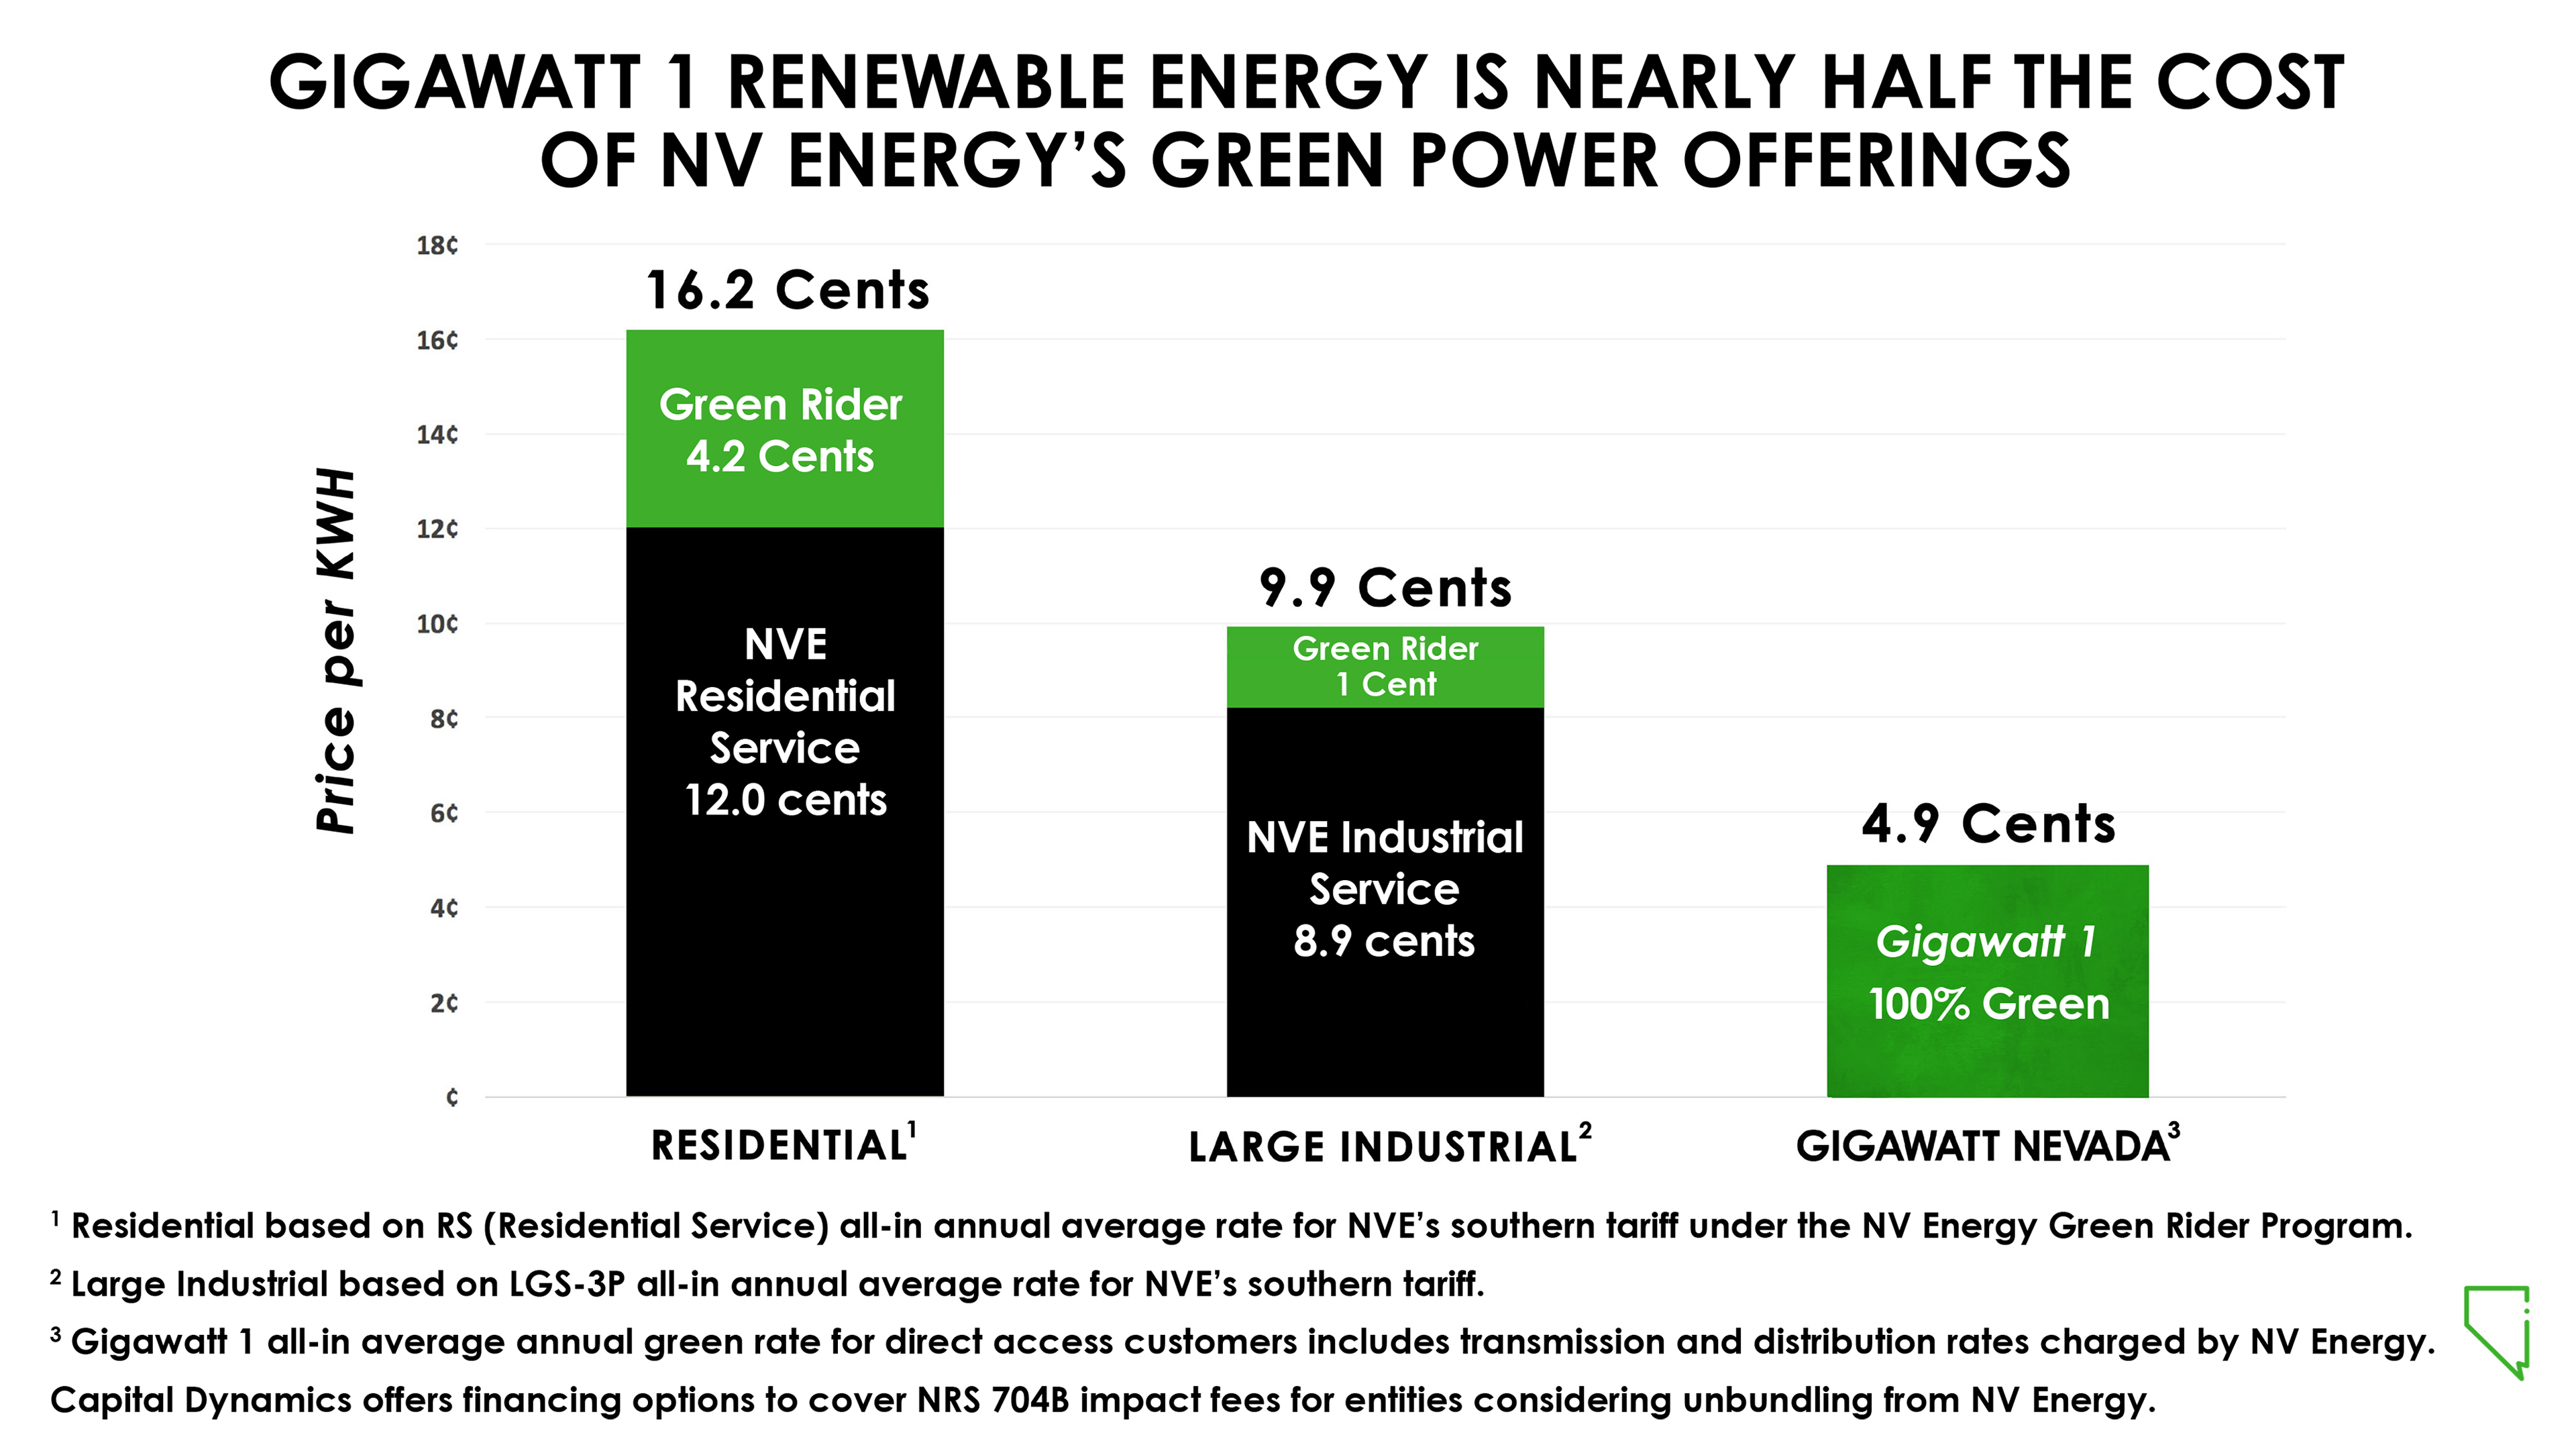 Customers Who Will Receive Renewable Energy From Gigawatt 1 For Substantially Less Than The Cost Of Receiving NV Nevada Power